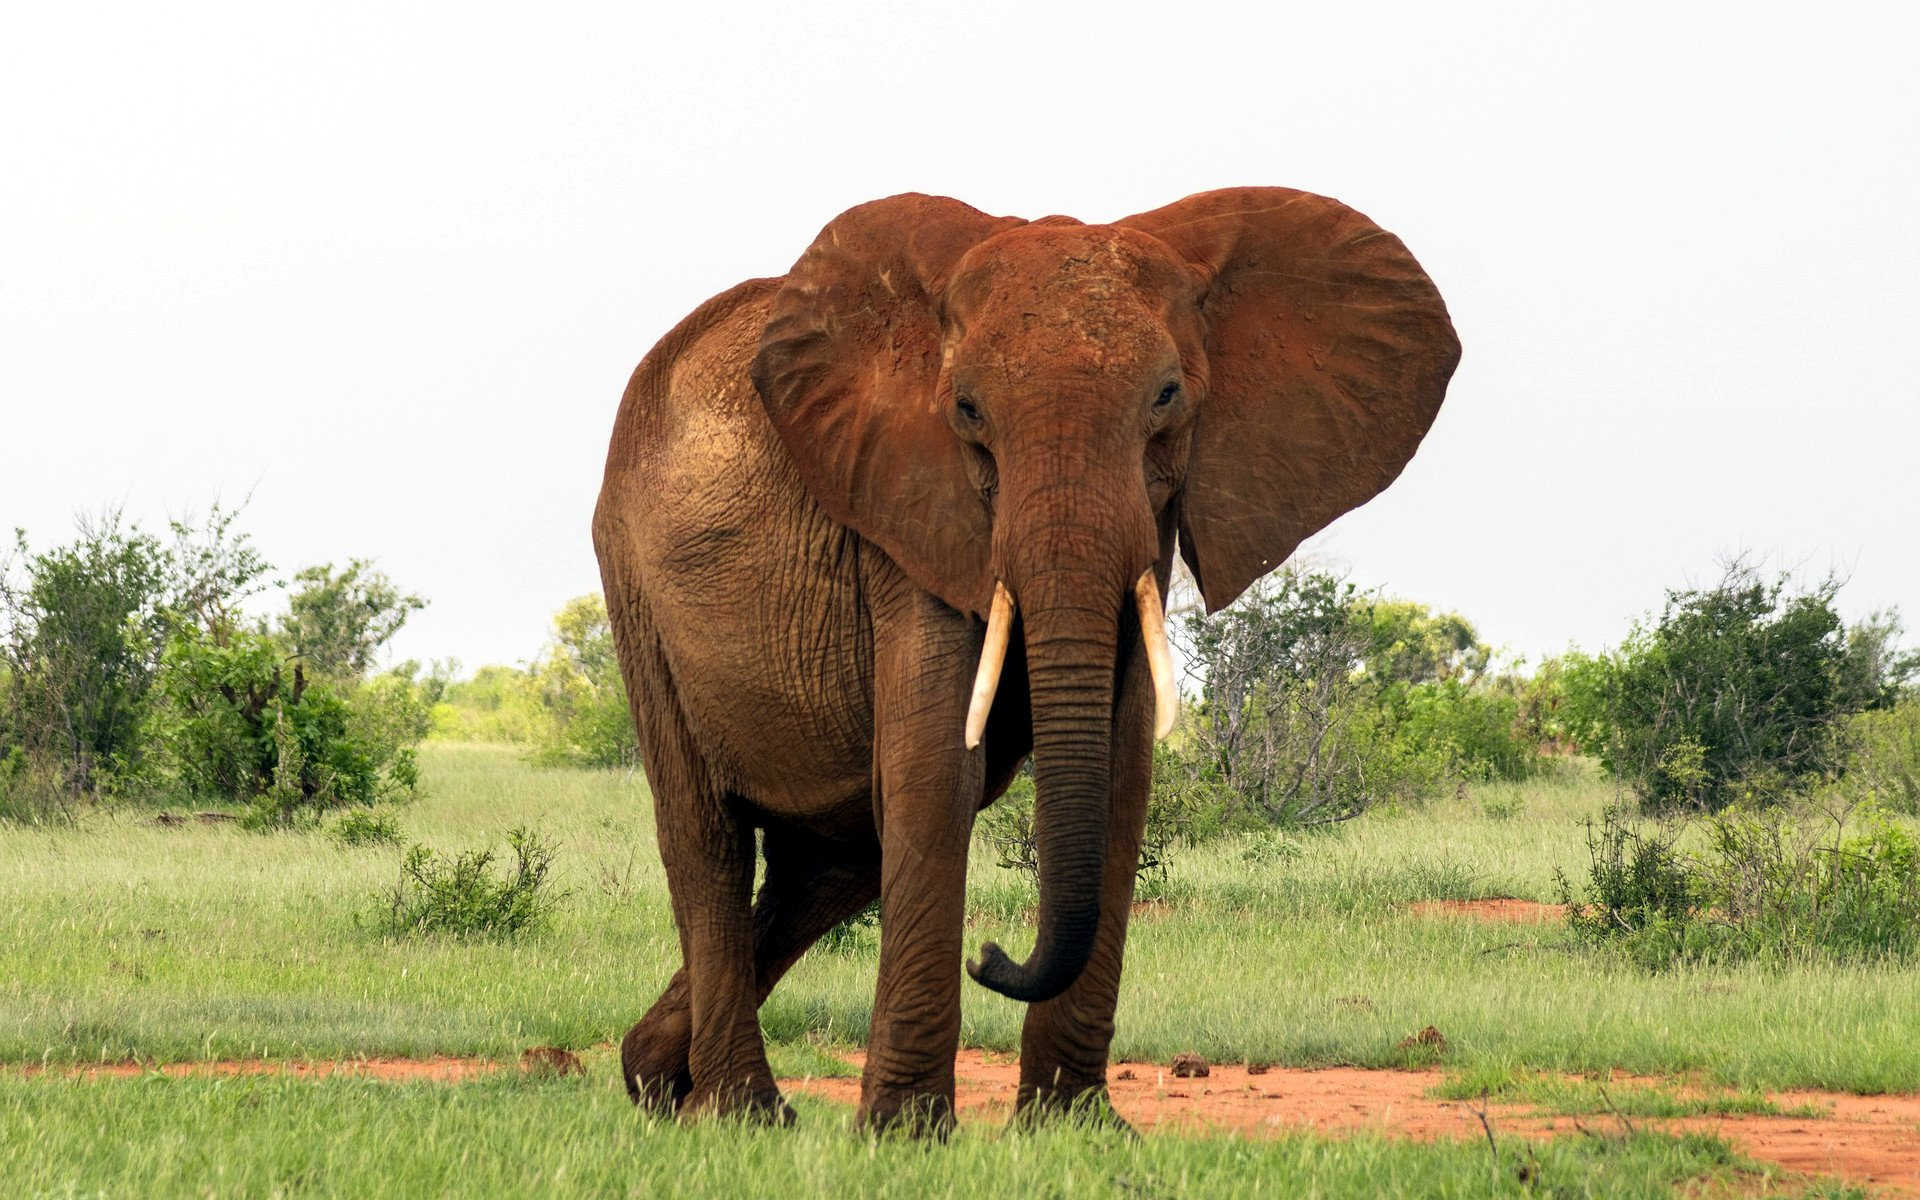 Elephants, like Parrots, have been known to mimic sounds they hear in their environment.